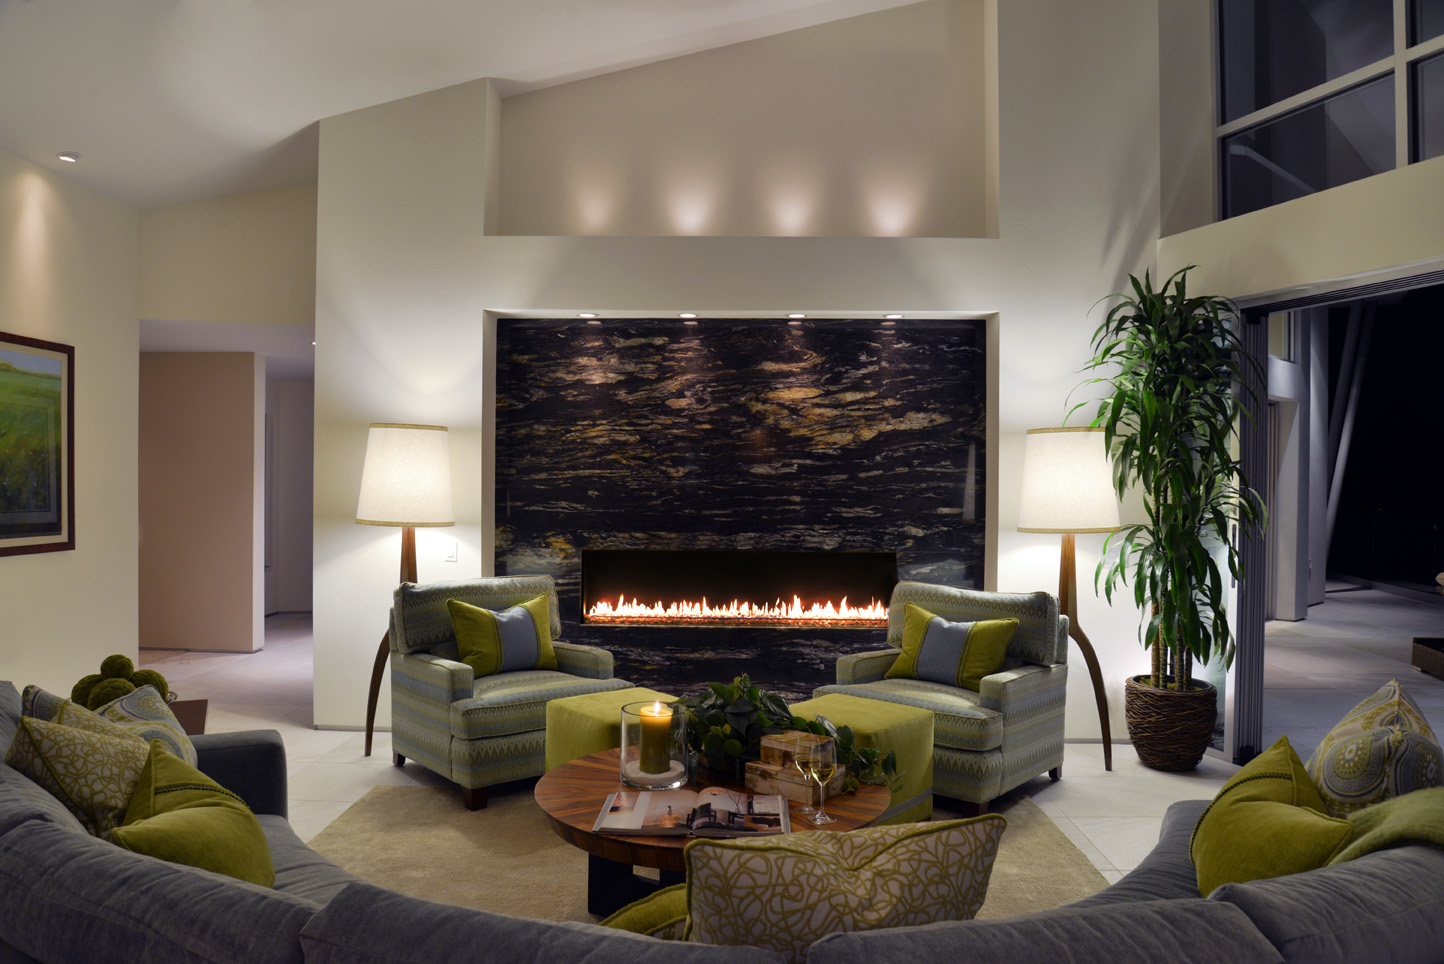 Designed by Kathy Ann Abell Interiors